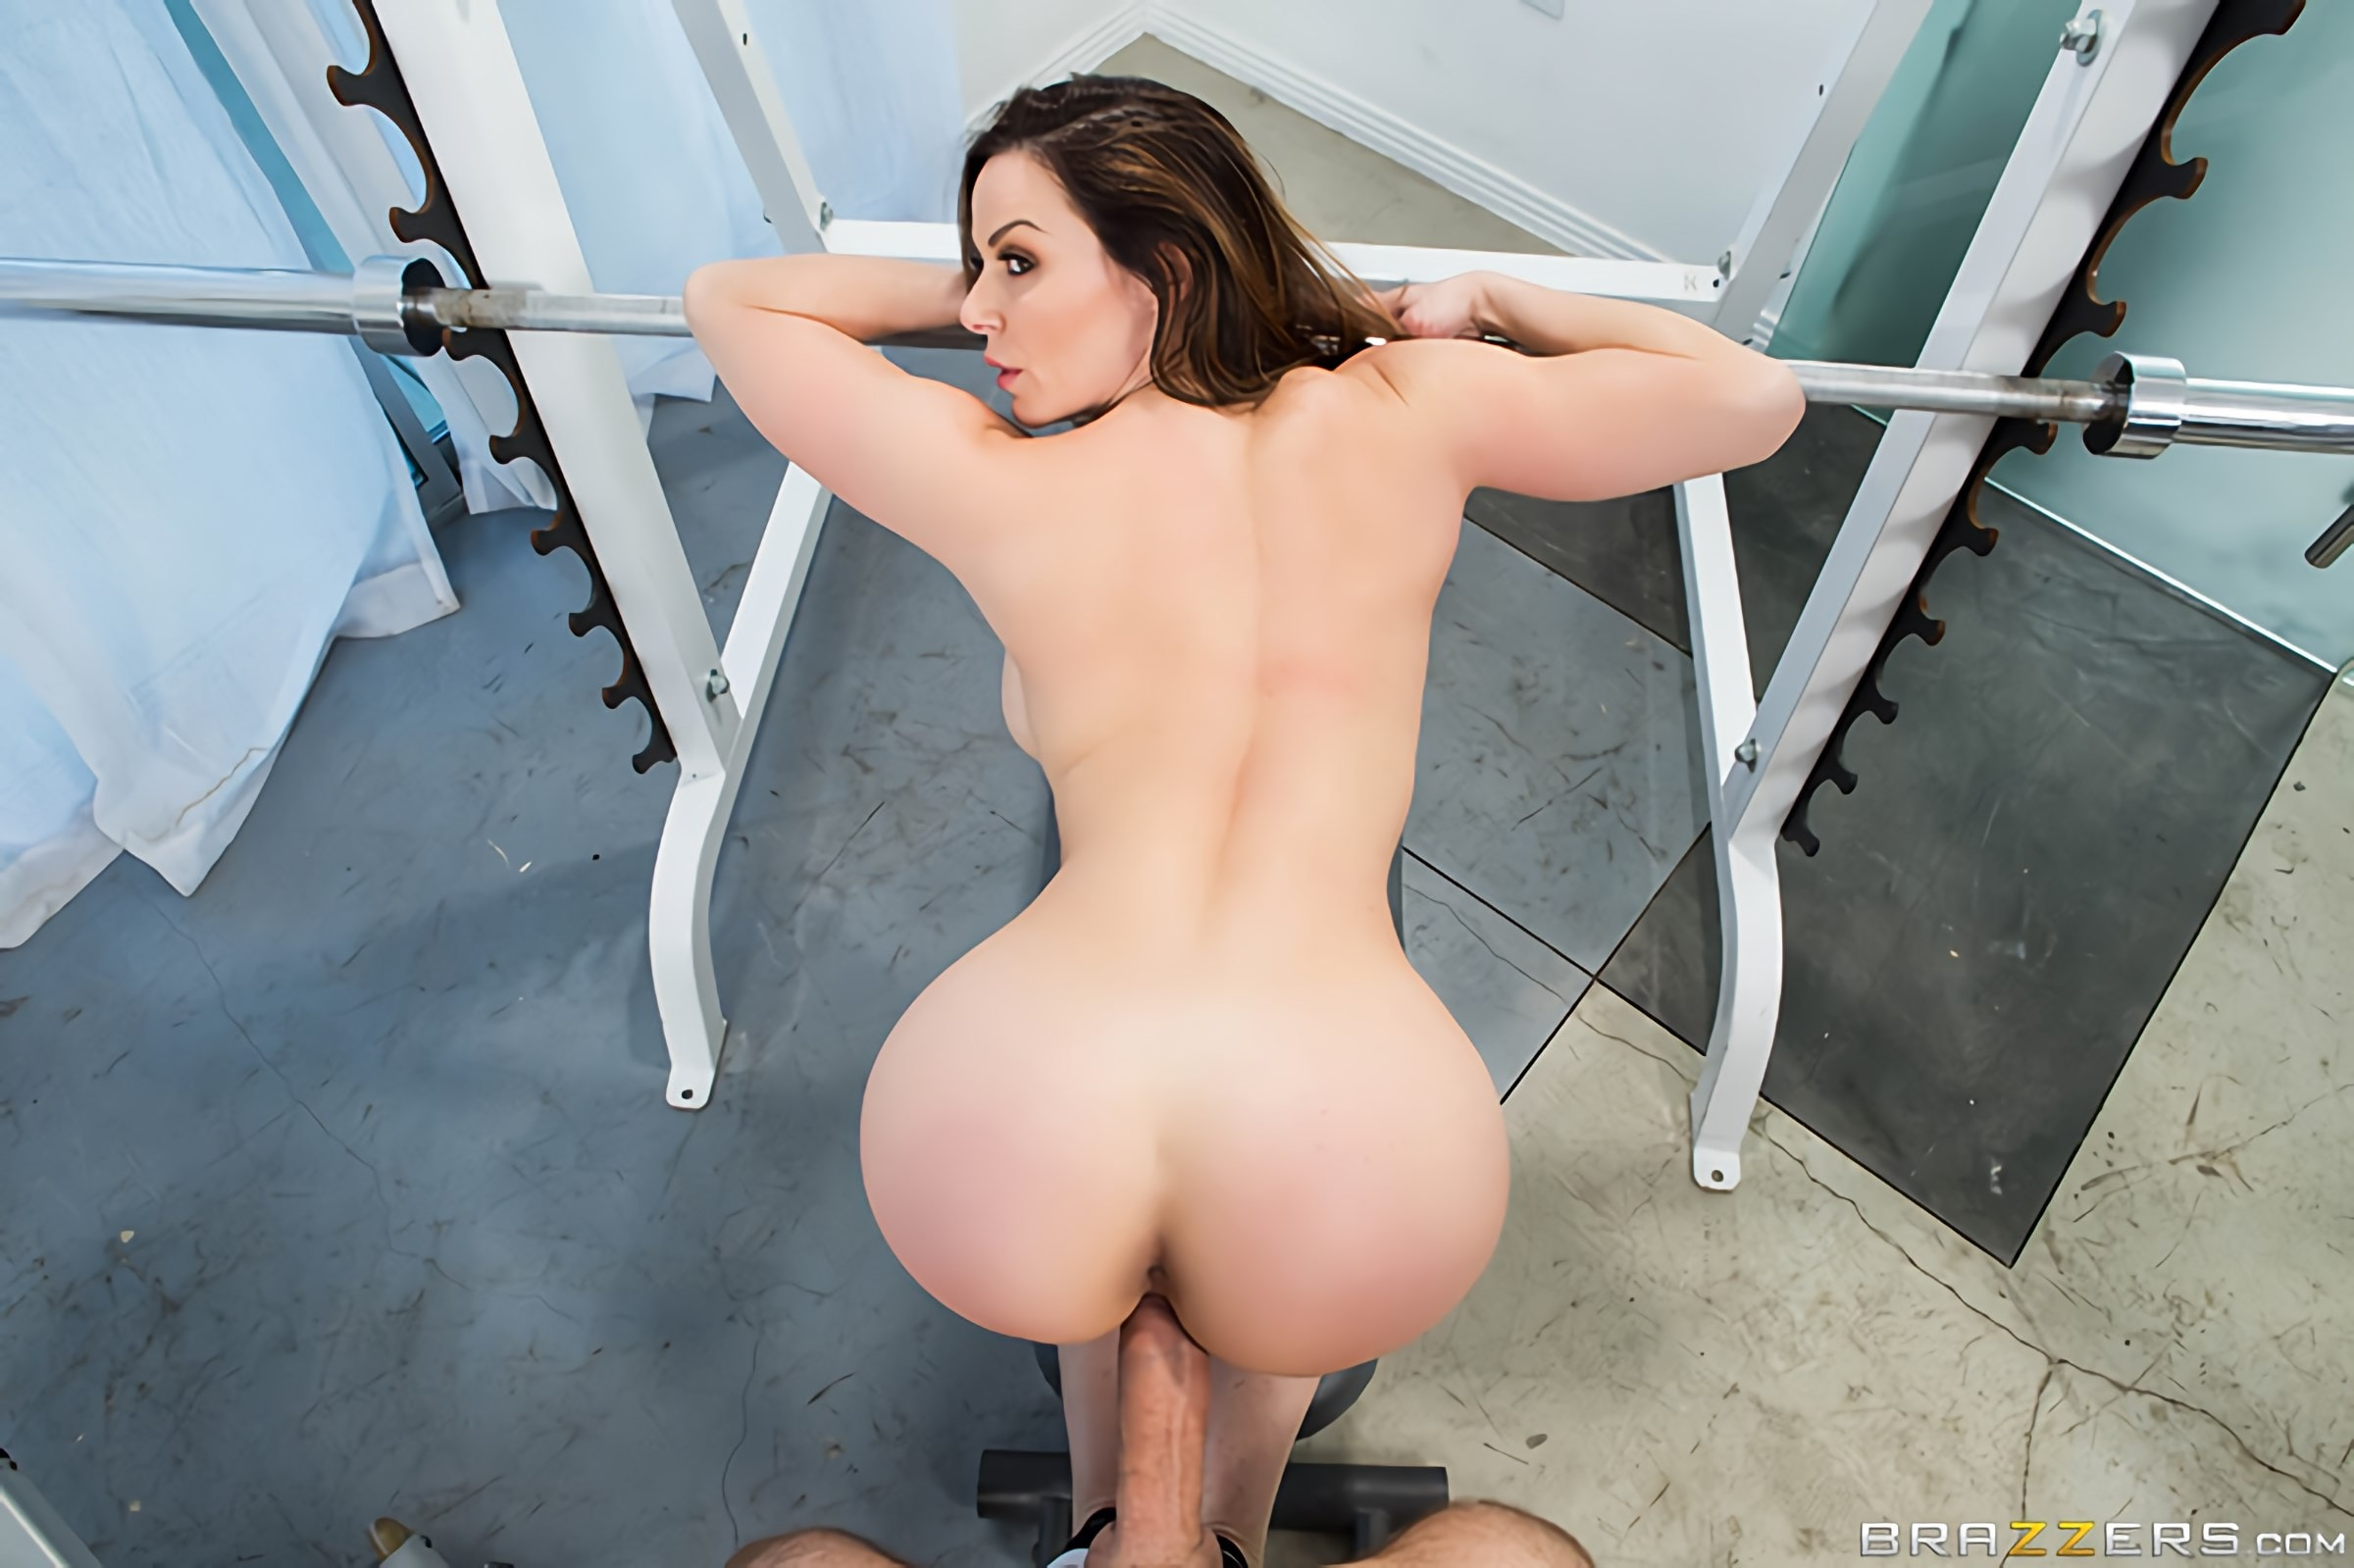 Brazzers 'Personal Trainers- Session 1' starring Kendra Lust (Photo 4)